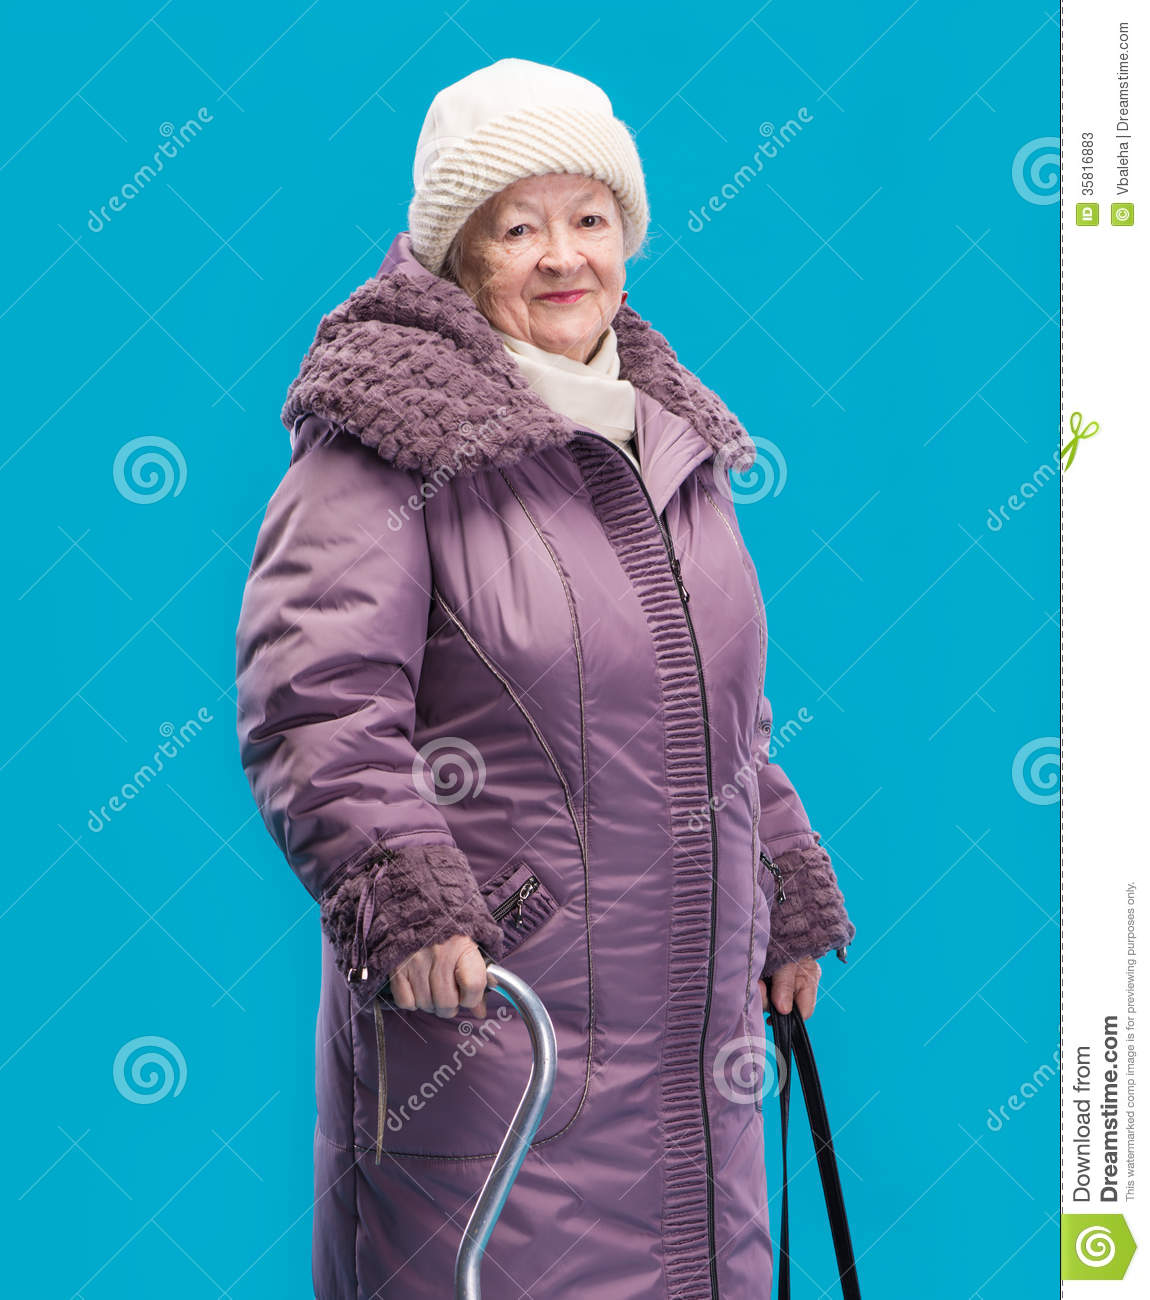 Clothing for older women Online clothing stores